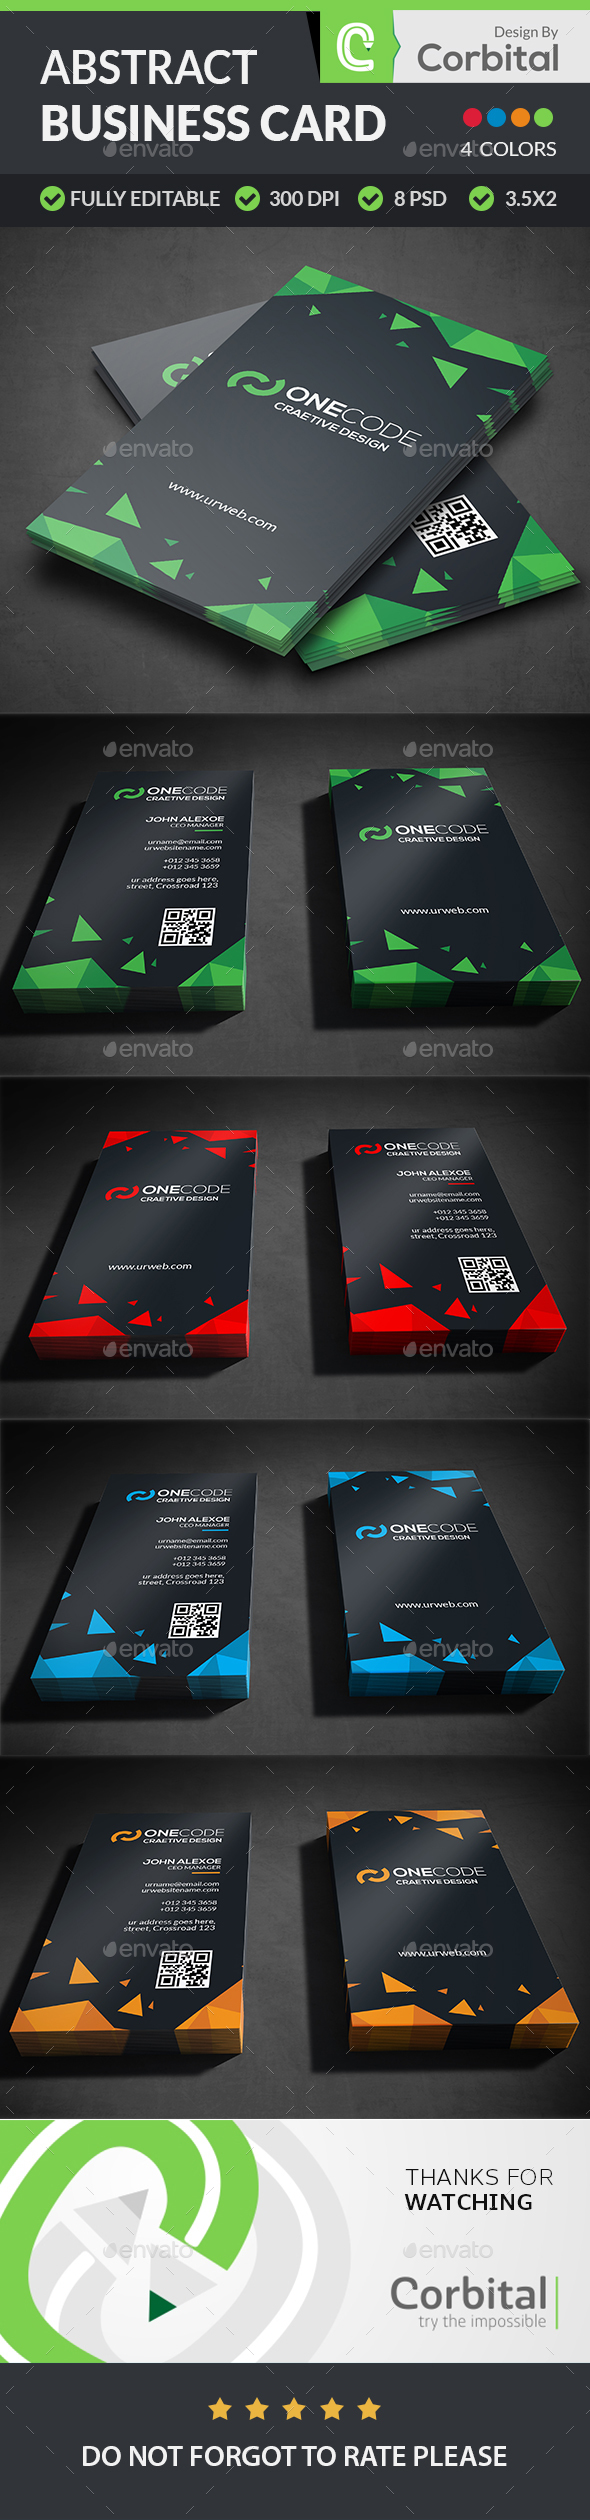 Modern Abstract Business Card - Creative Business Cards